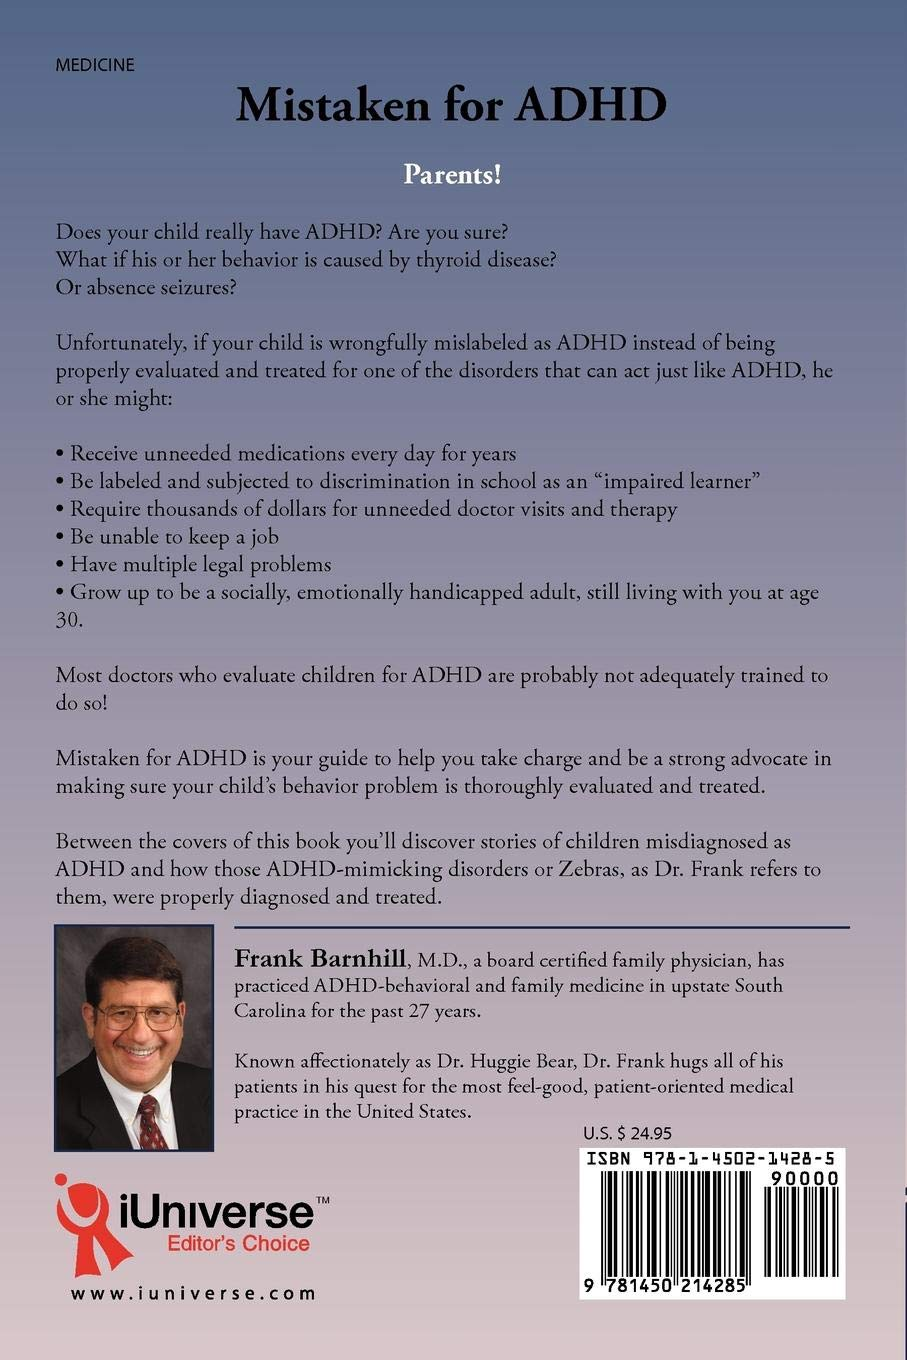 Are You Sure Its Adhd >> Mistaken For Adhd How You Can Prevent Mislabeling Your Child As A